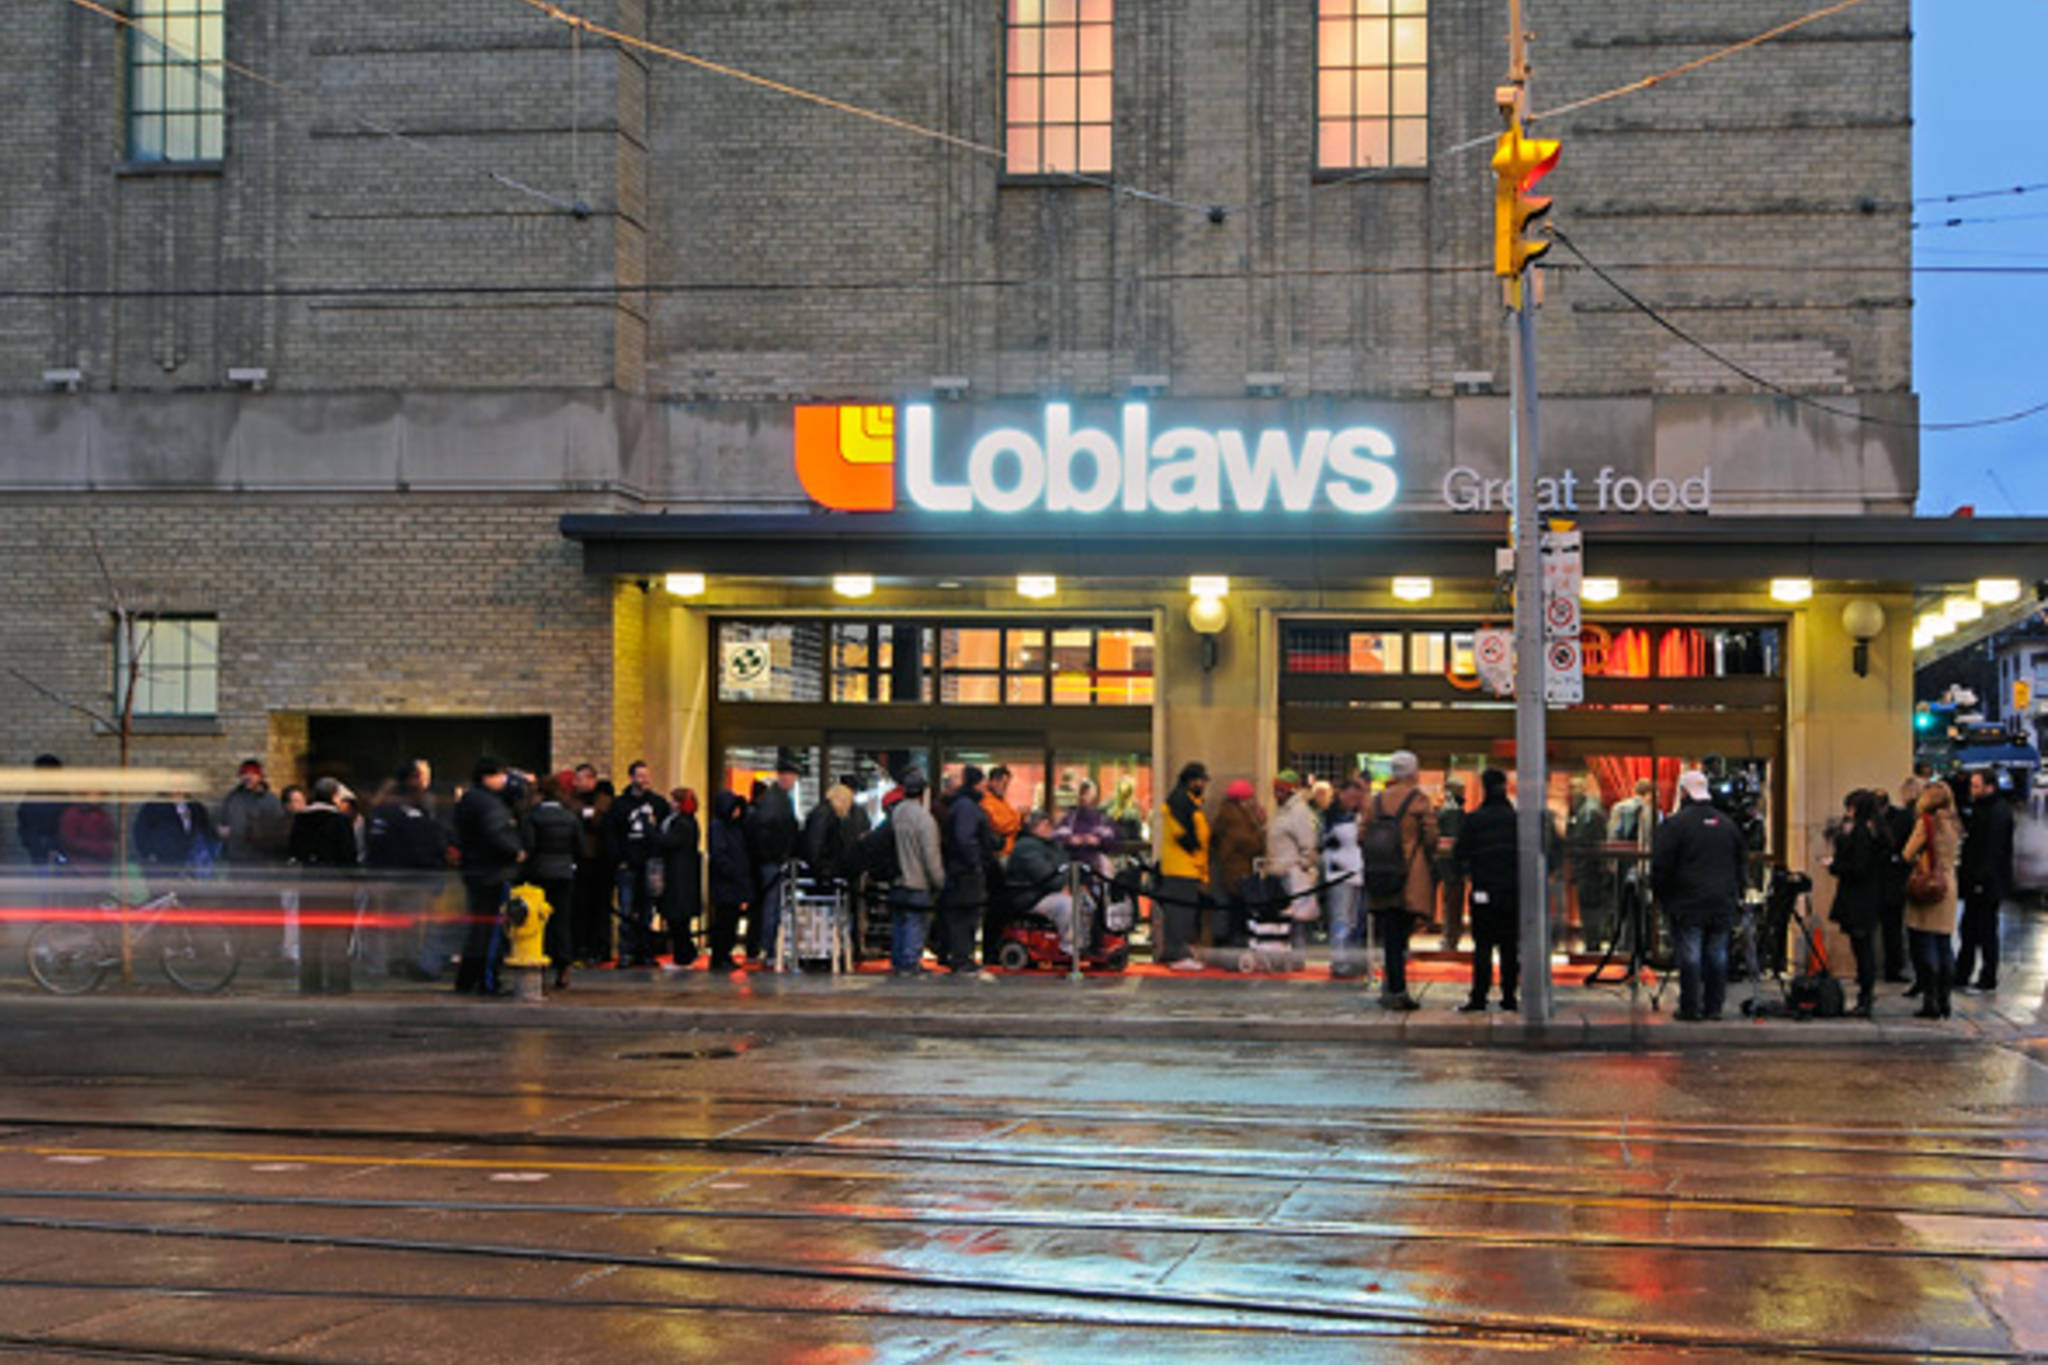 Loblaws‌ is giving away free groceries in 2018 as a Mea Culpa